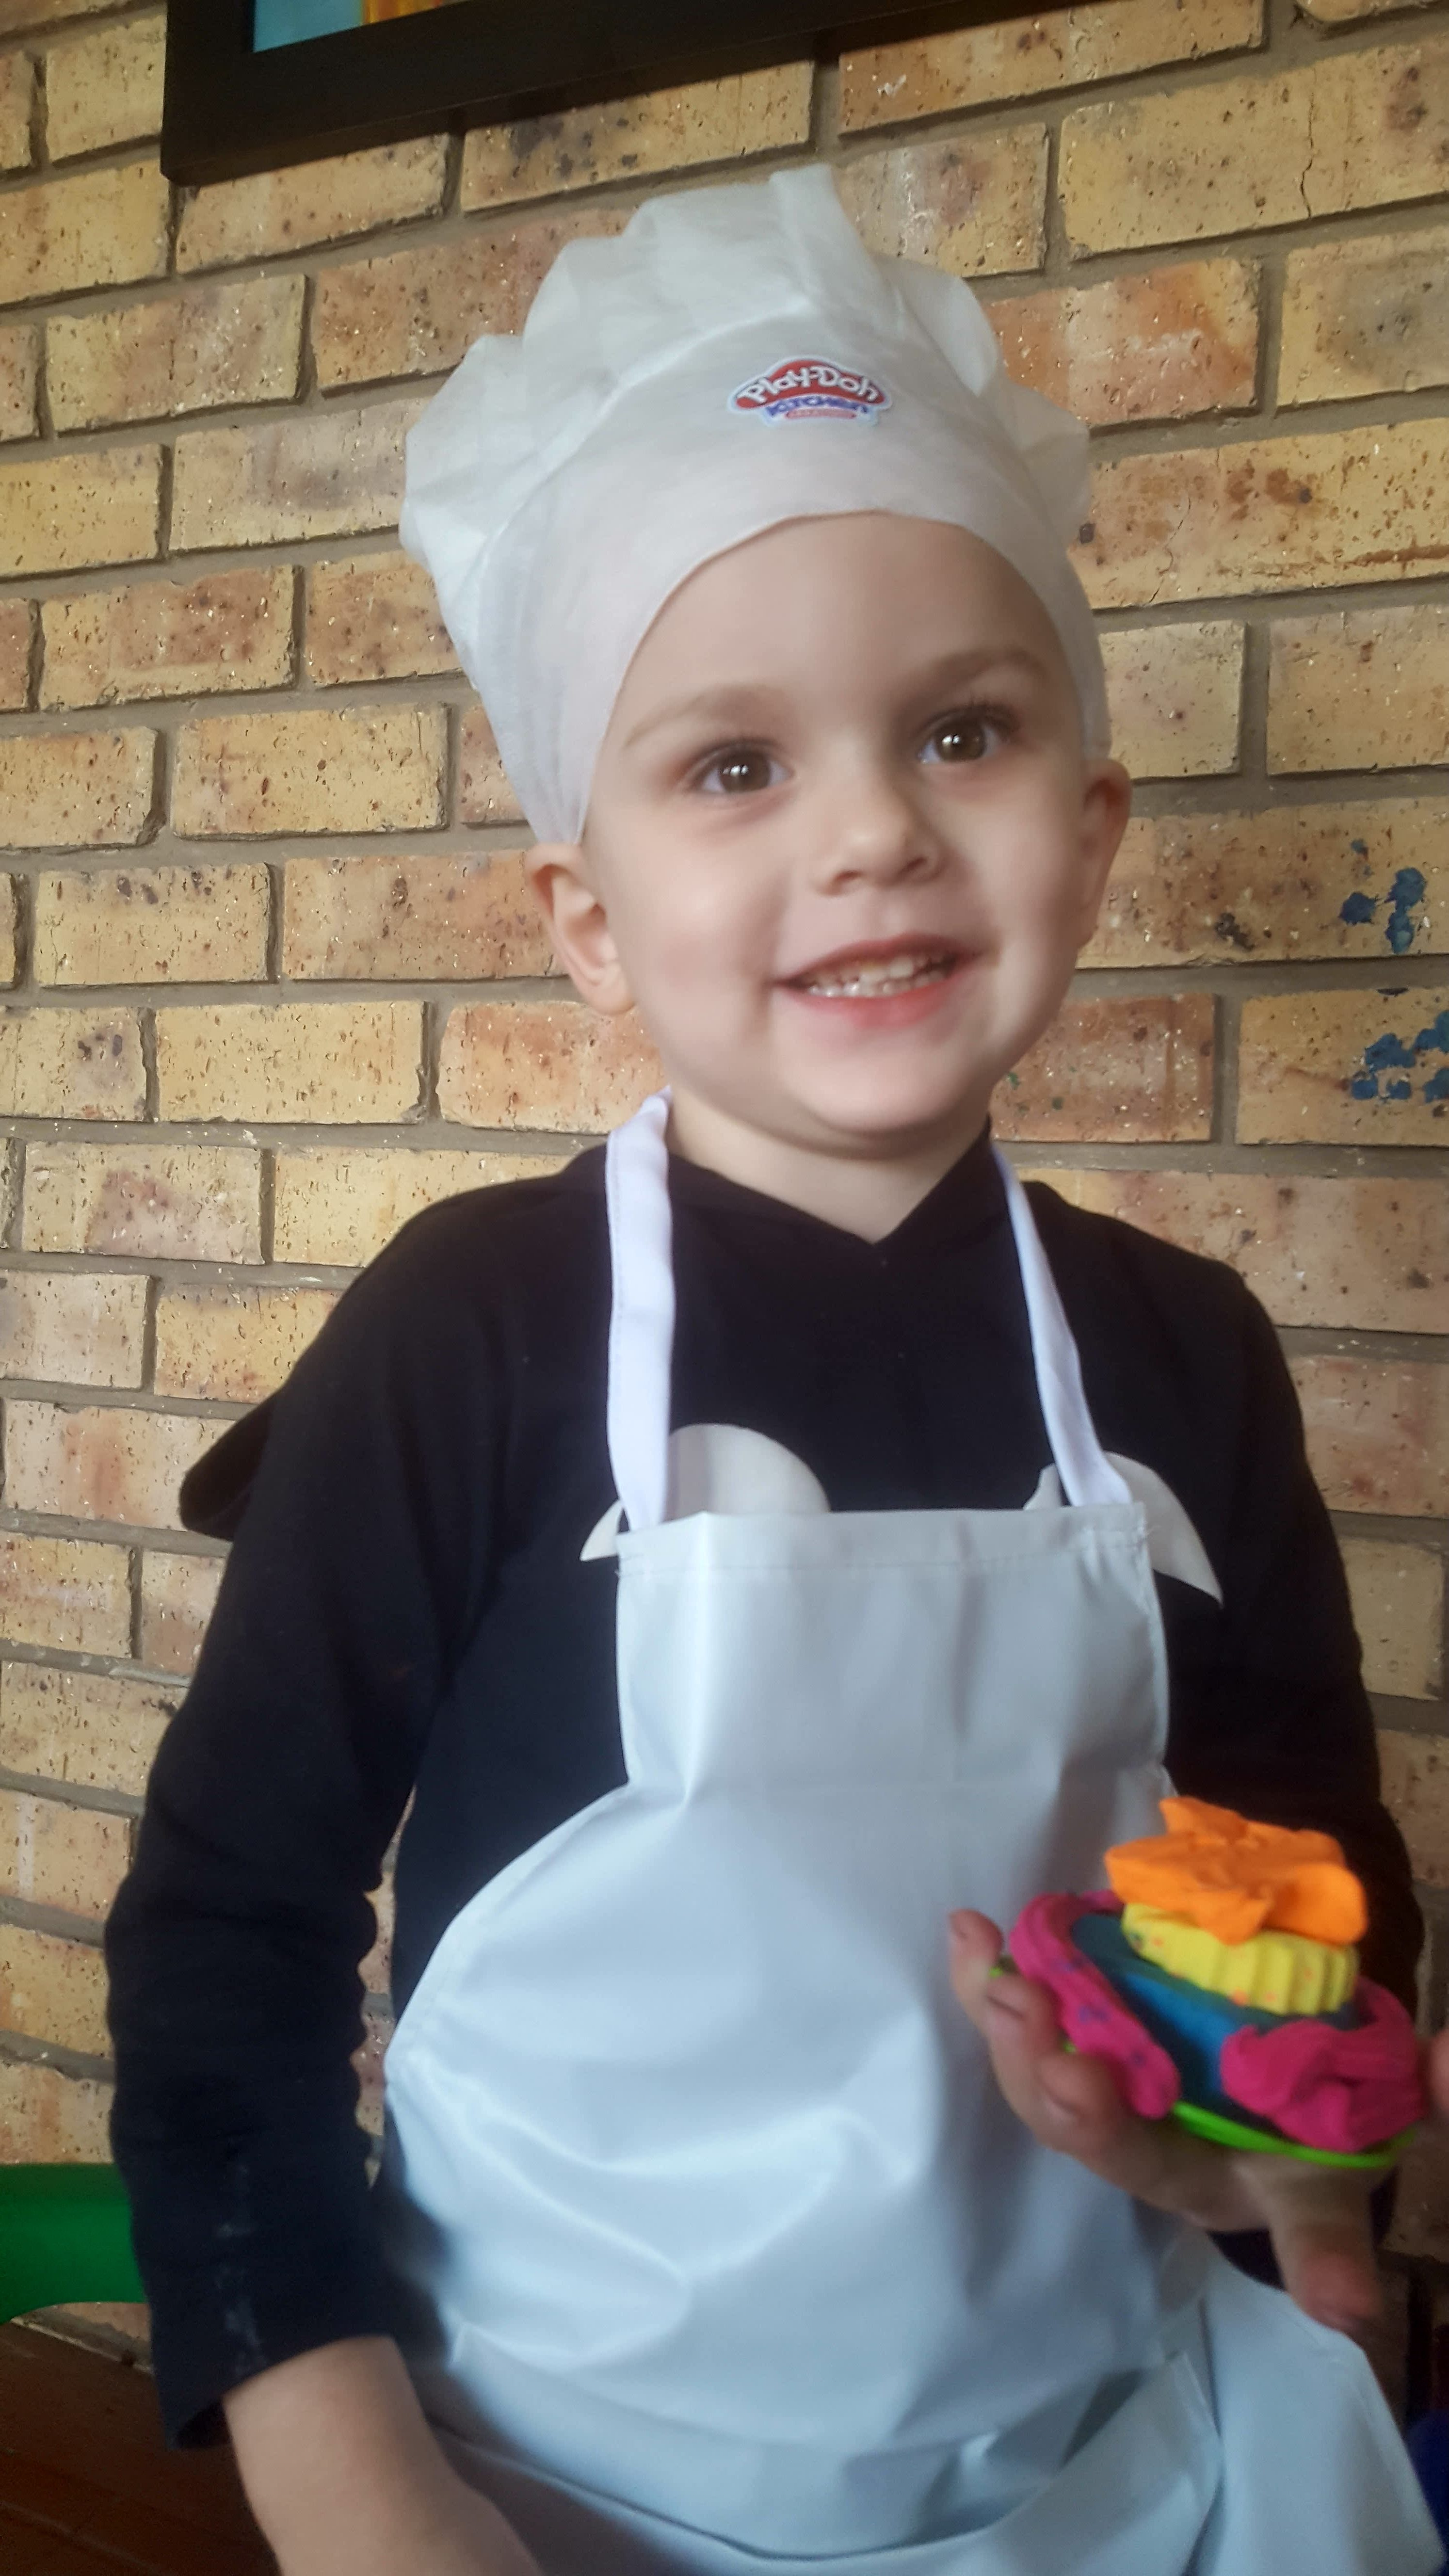 Play-Doh Kitchen Creations - By Megan KellyPlay-Doh Kitchen Creations - By Megan Kelly